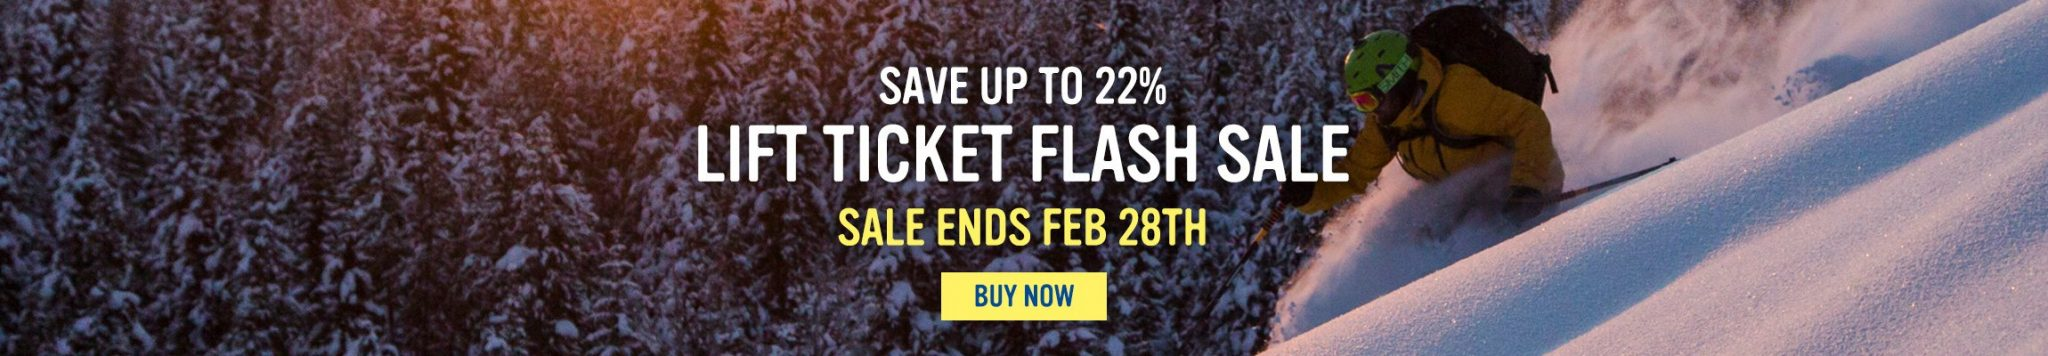 Lift Ticket Flash Sale